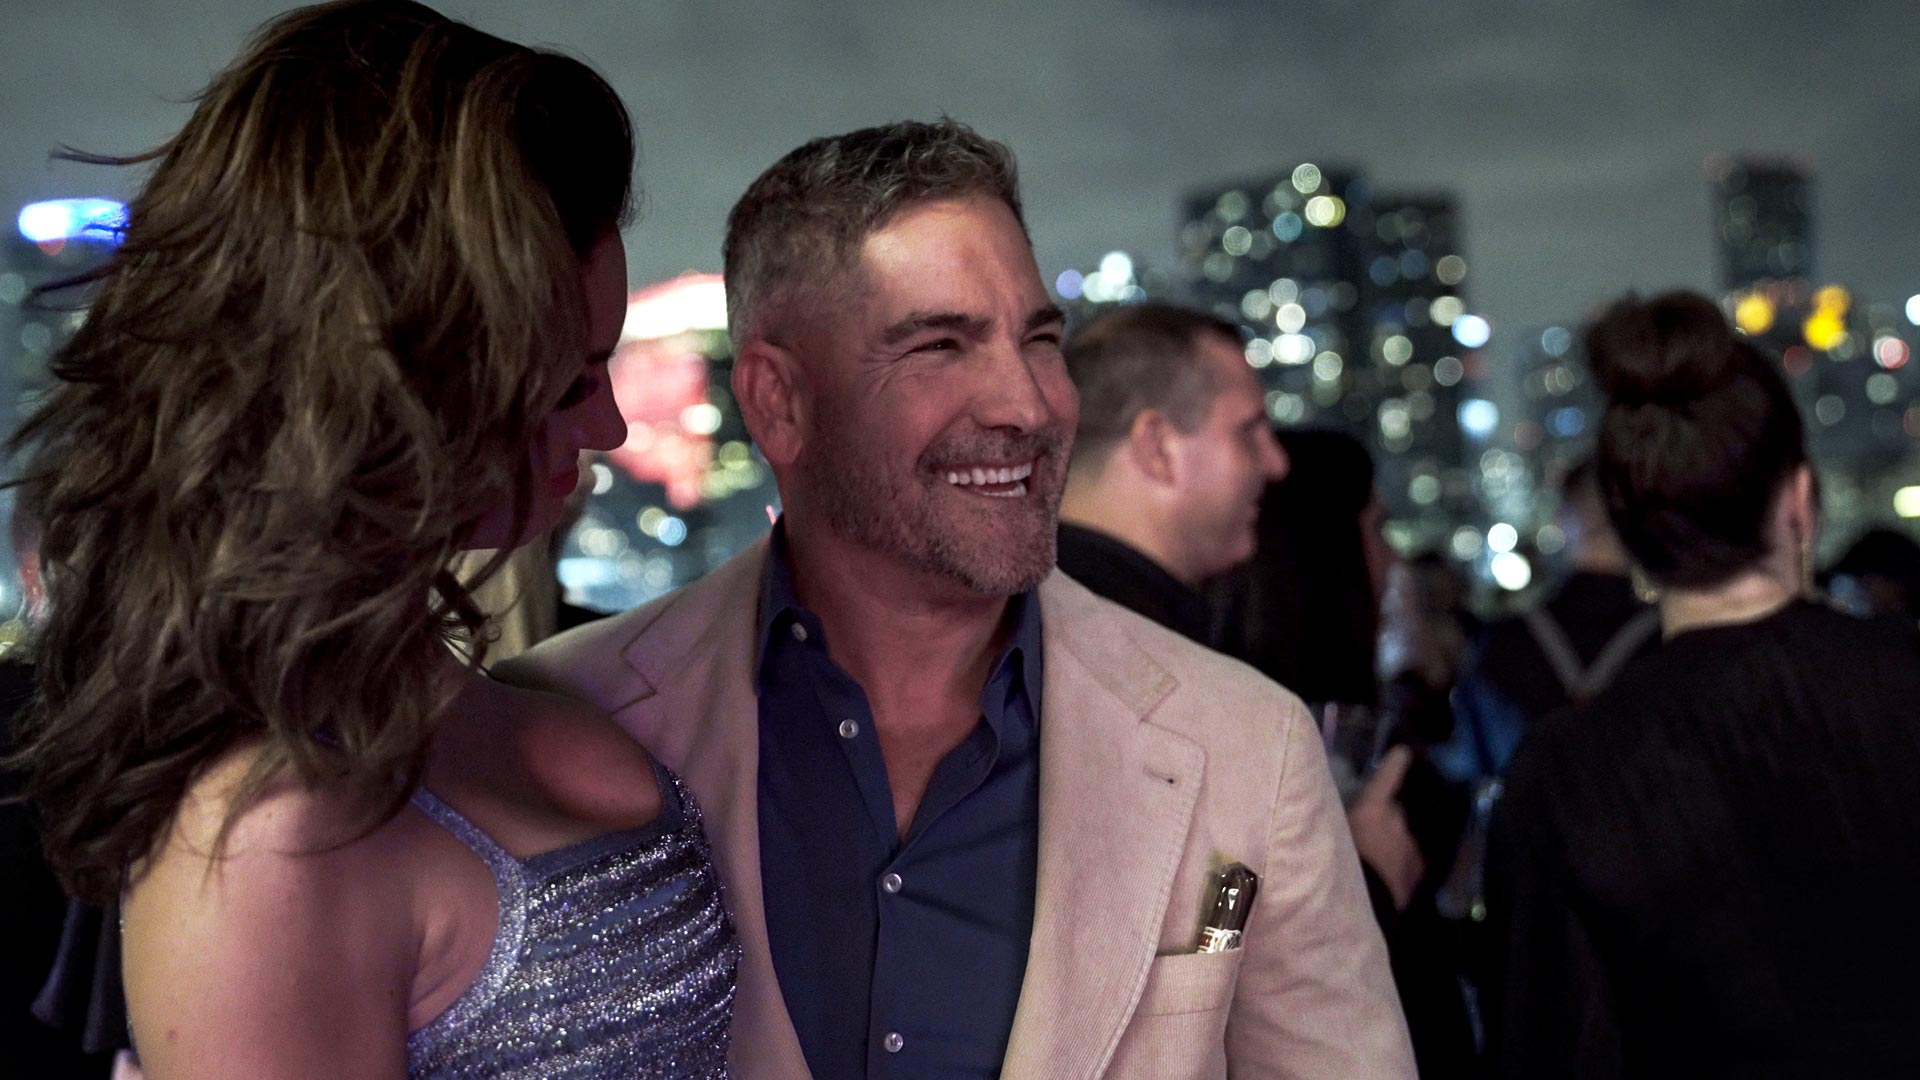 When is Grant Cardone's birthday?